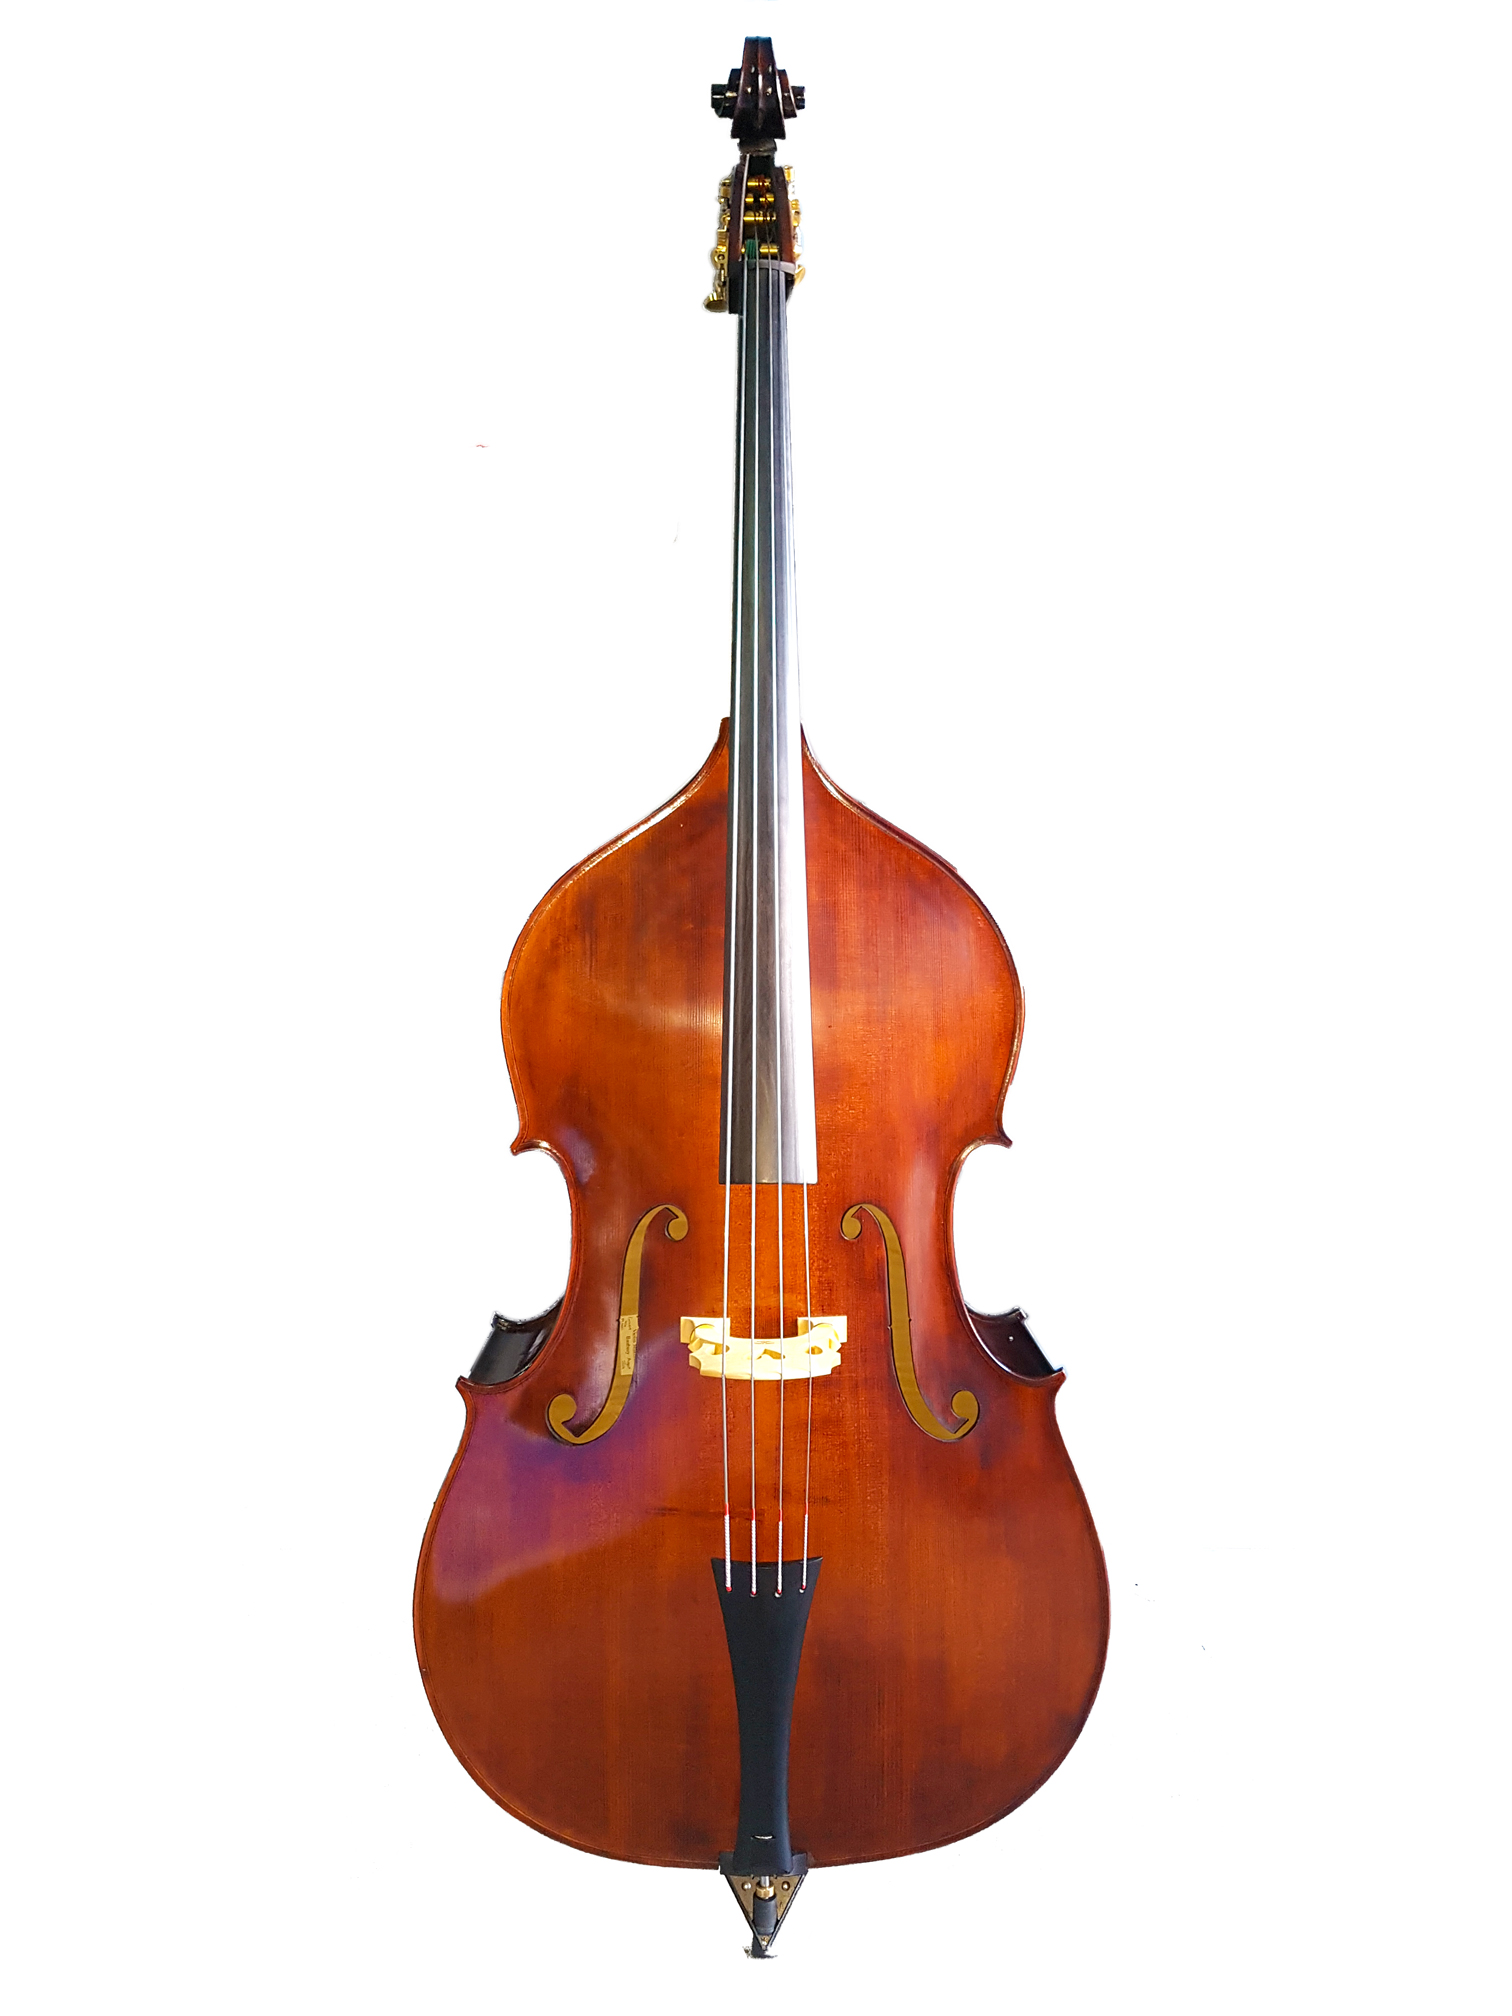 T&G 3x4 Concert Double Bass, 4 string